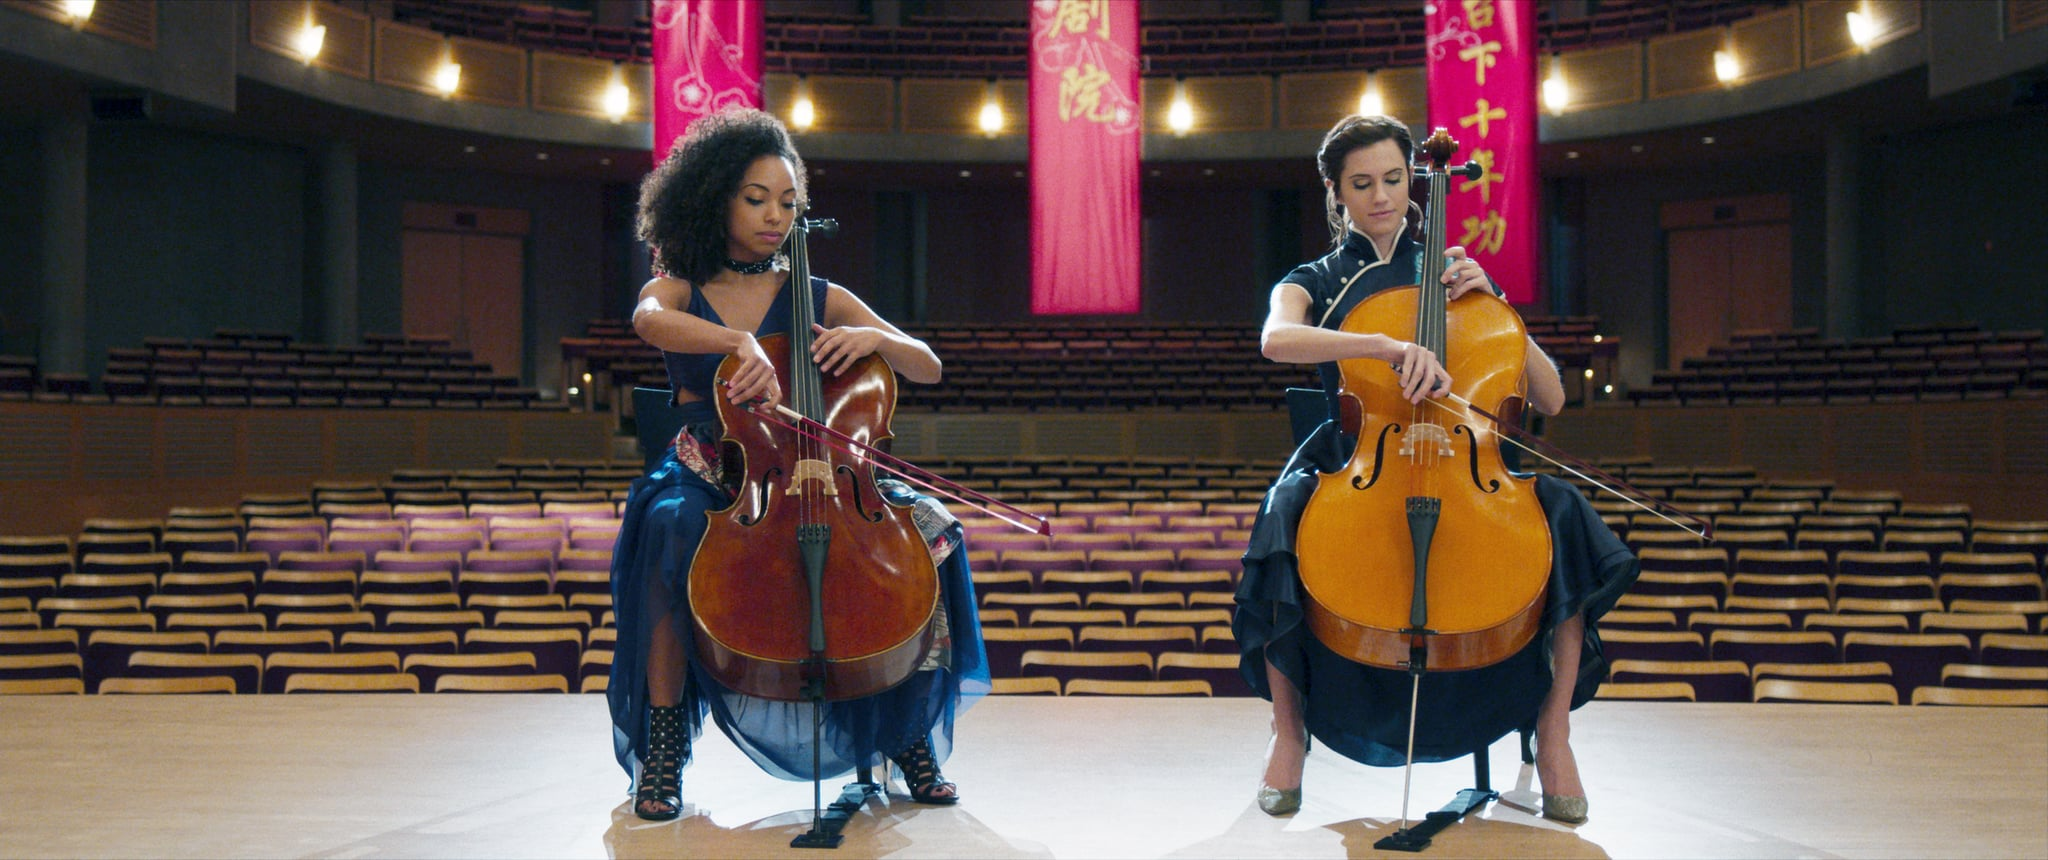 THE PERFECTION, from left:  Logan Browning, Allison Williams, 2019.  Netflix /courtesy Everett Collection